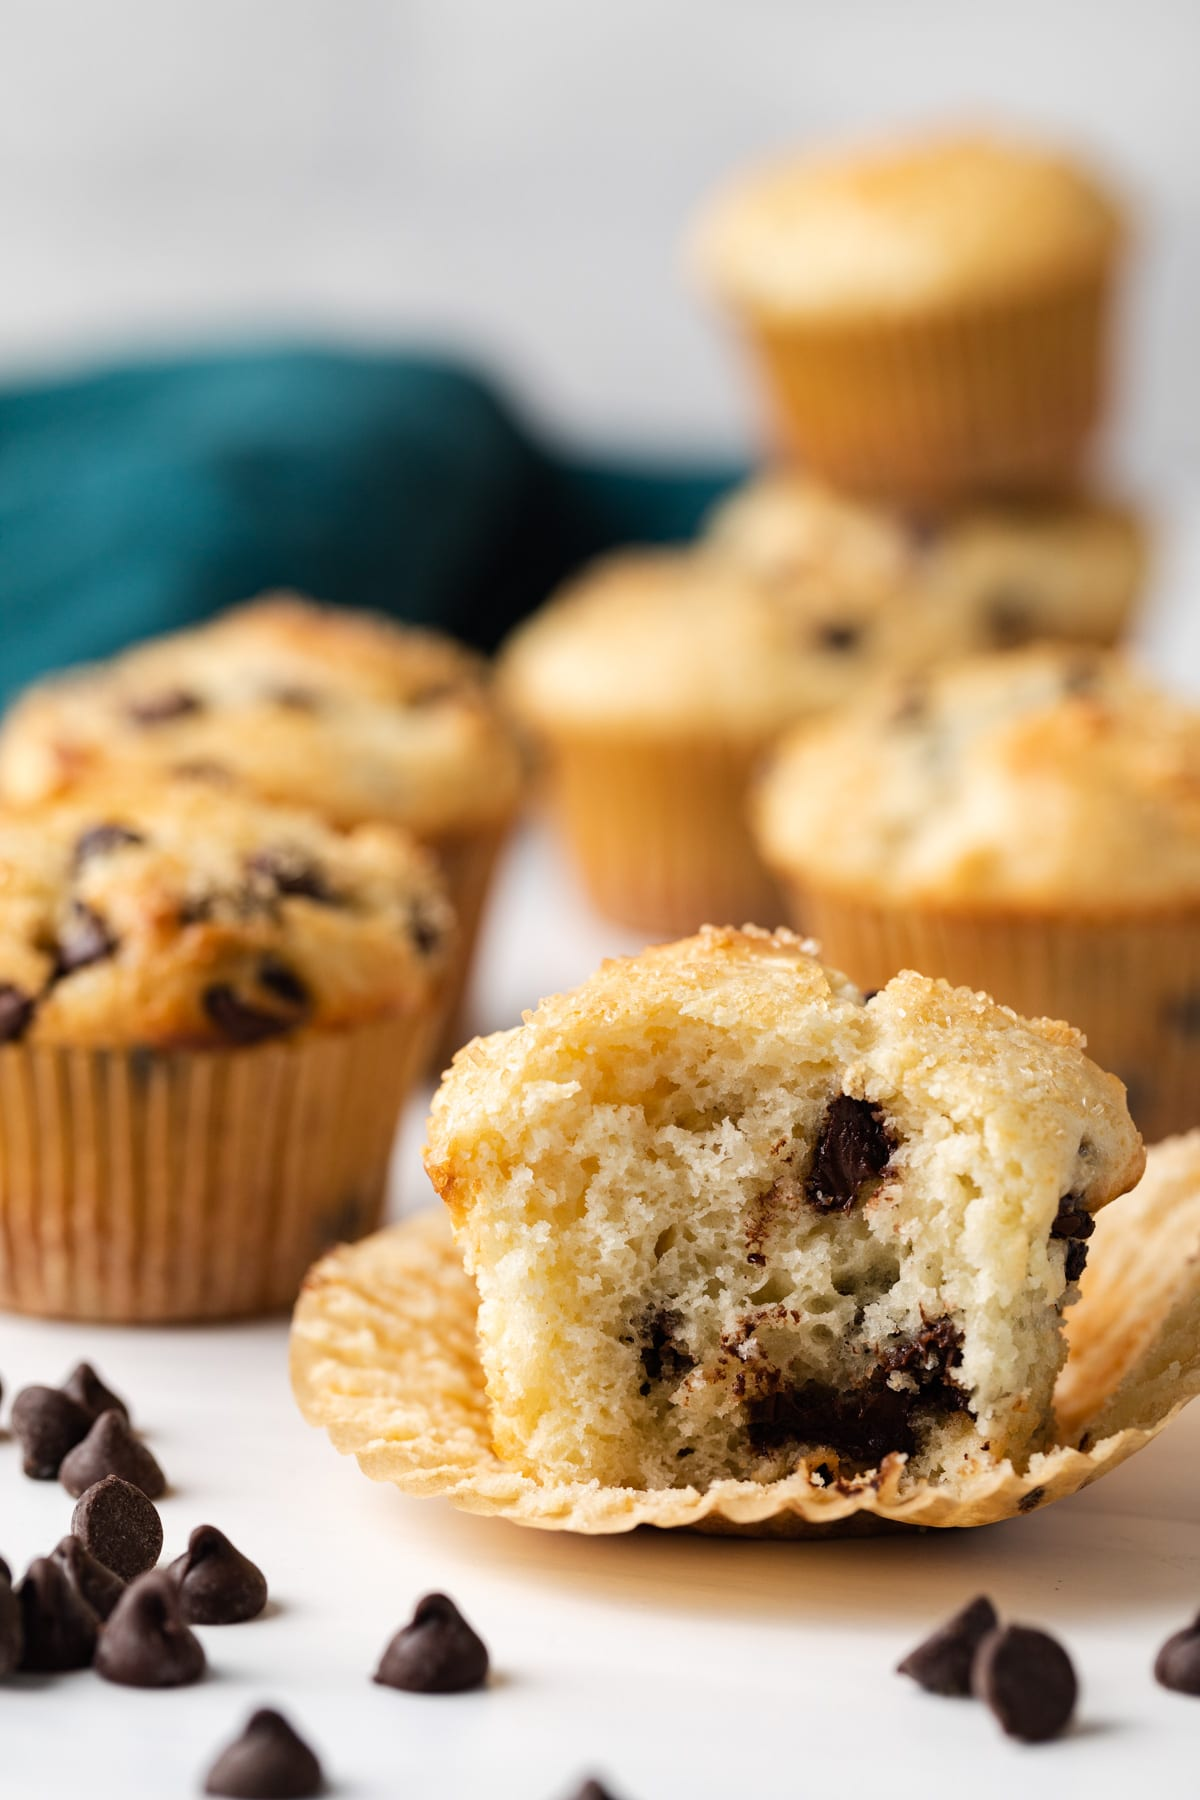 side view of chocolate chip muffin with a bite taken out so the inside is visible